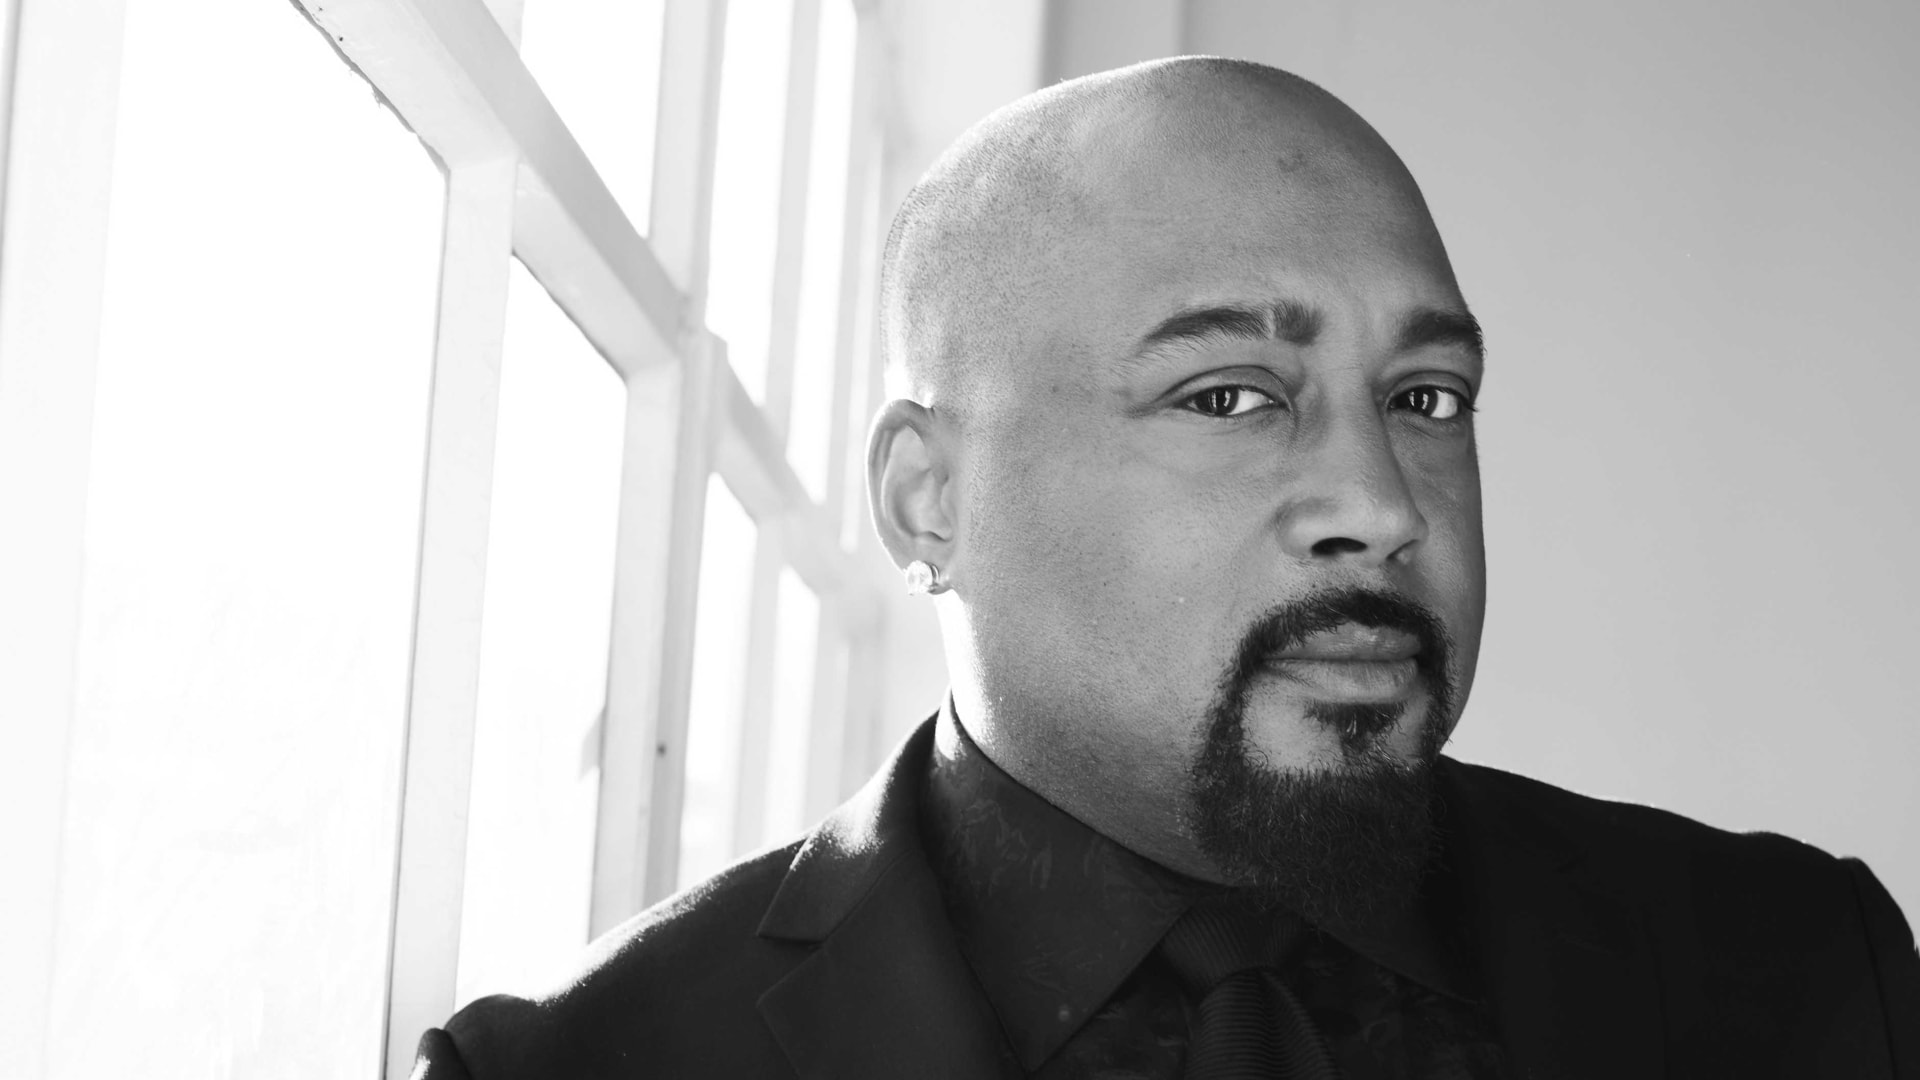 Backed by Big Sponsors and Celebrities, Daymond John Launches Black Entrepreneurs Day